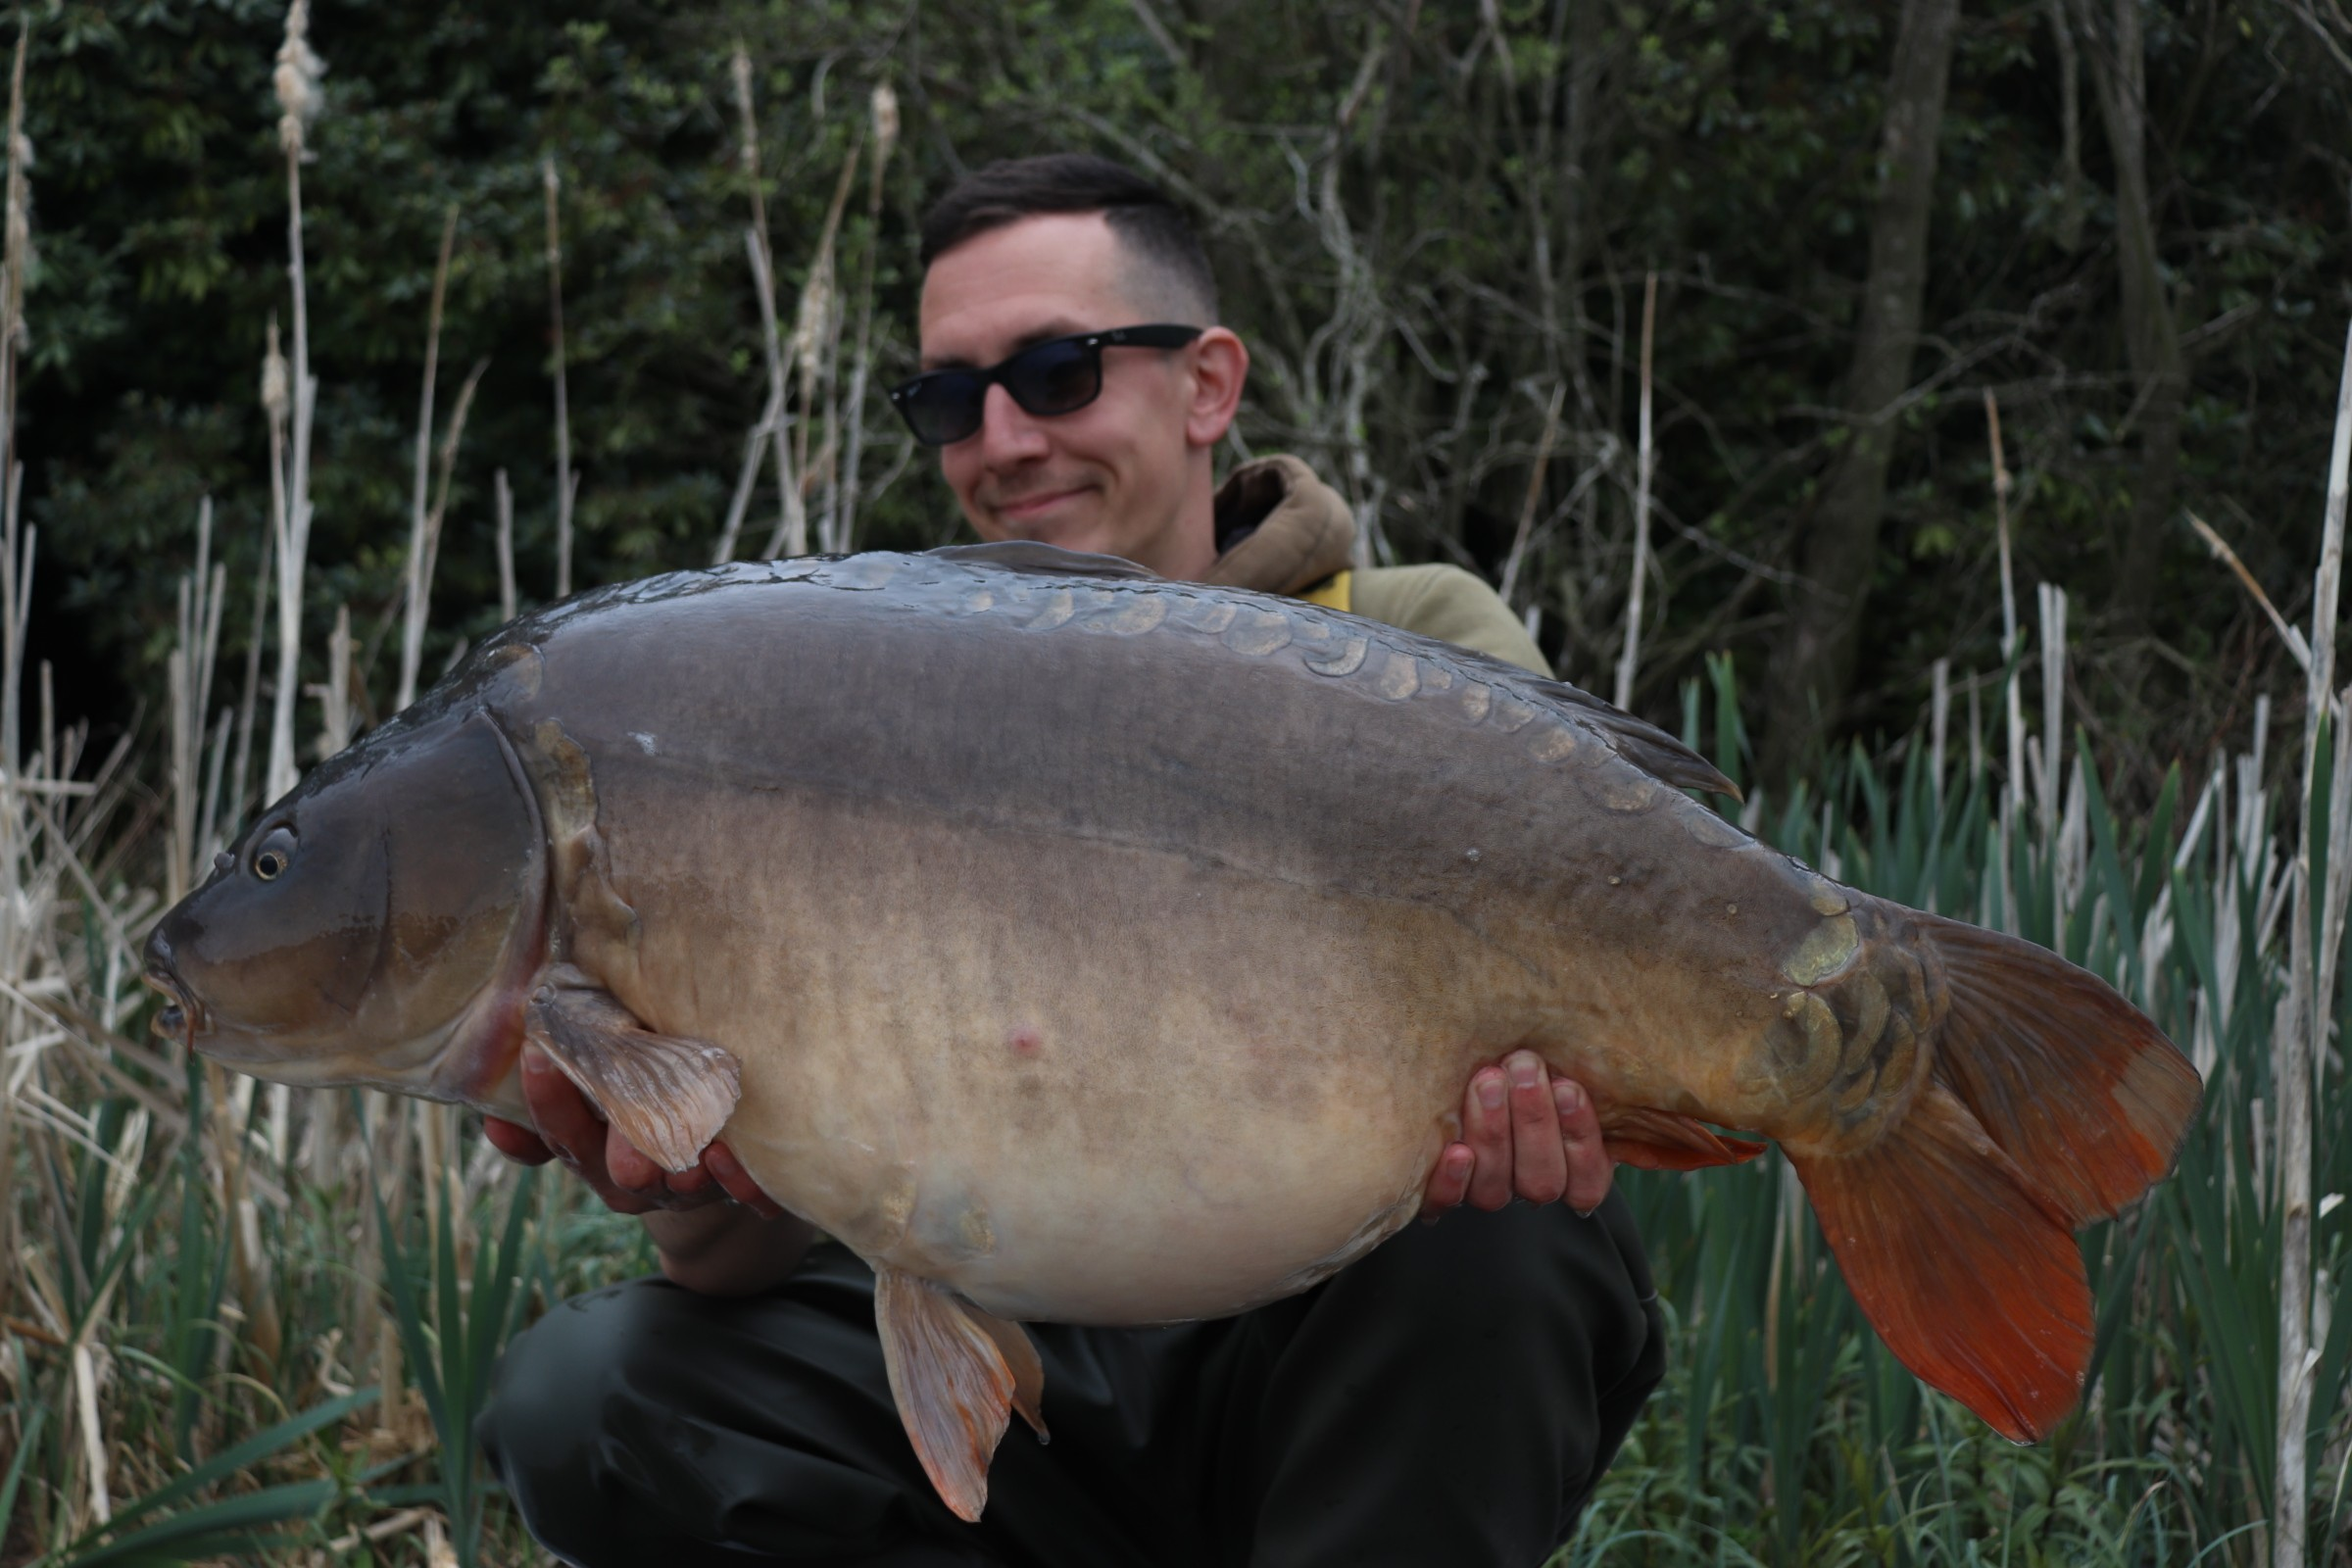 36lb 14oz  caught on